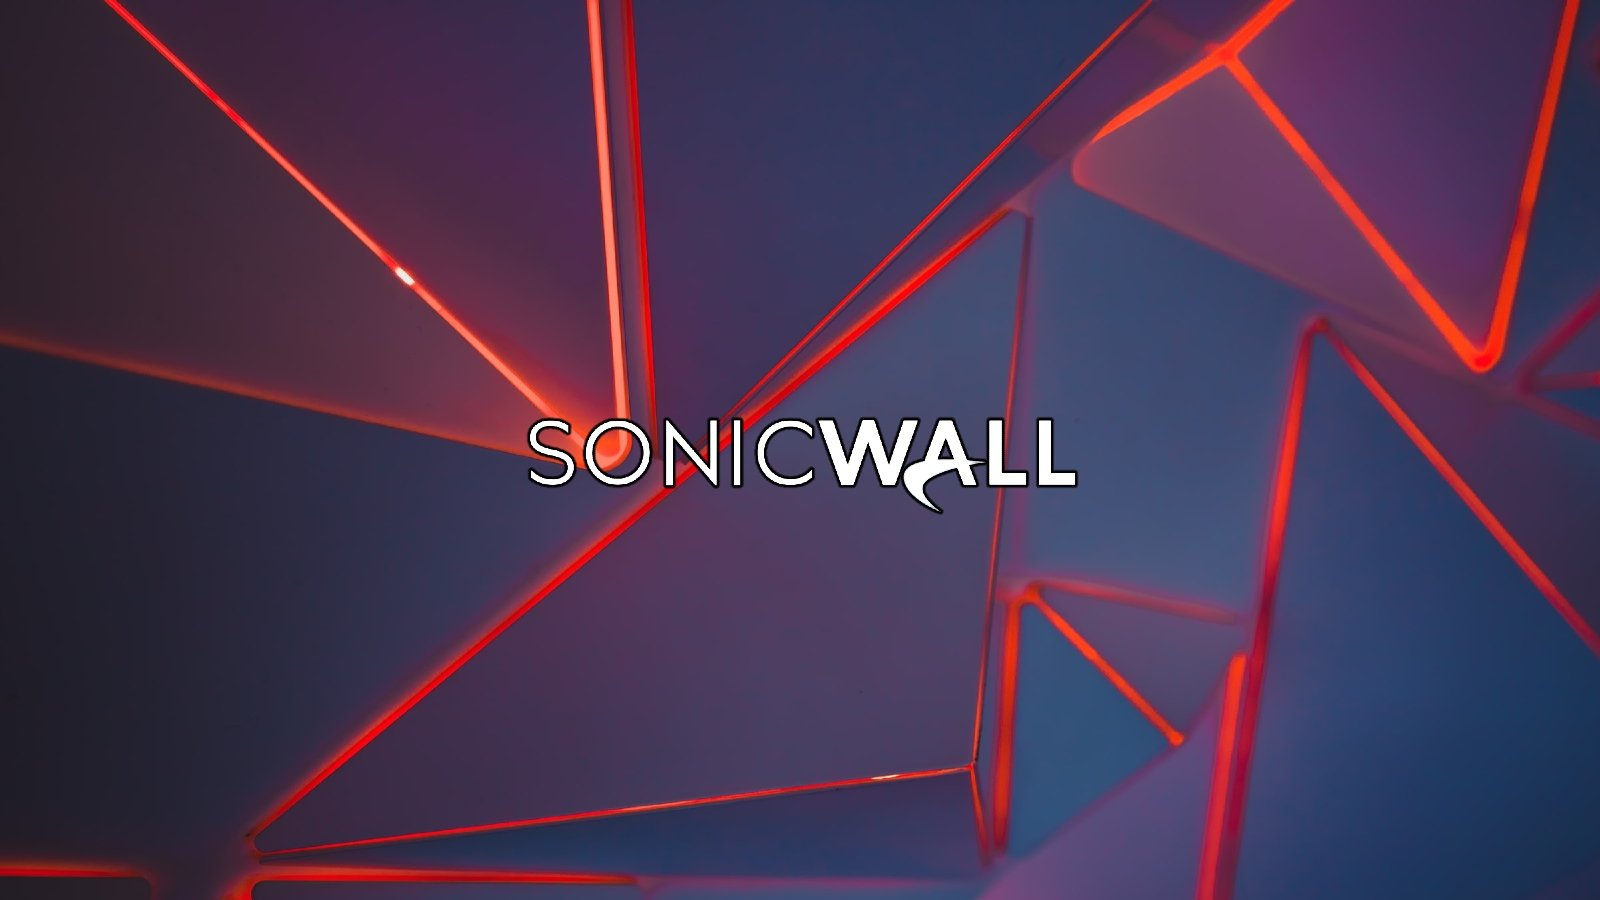 New ransomware group uses SonicWall zero-day to breach networks